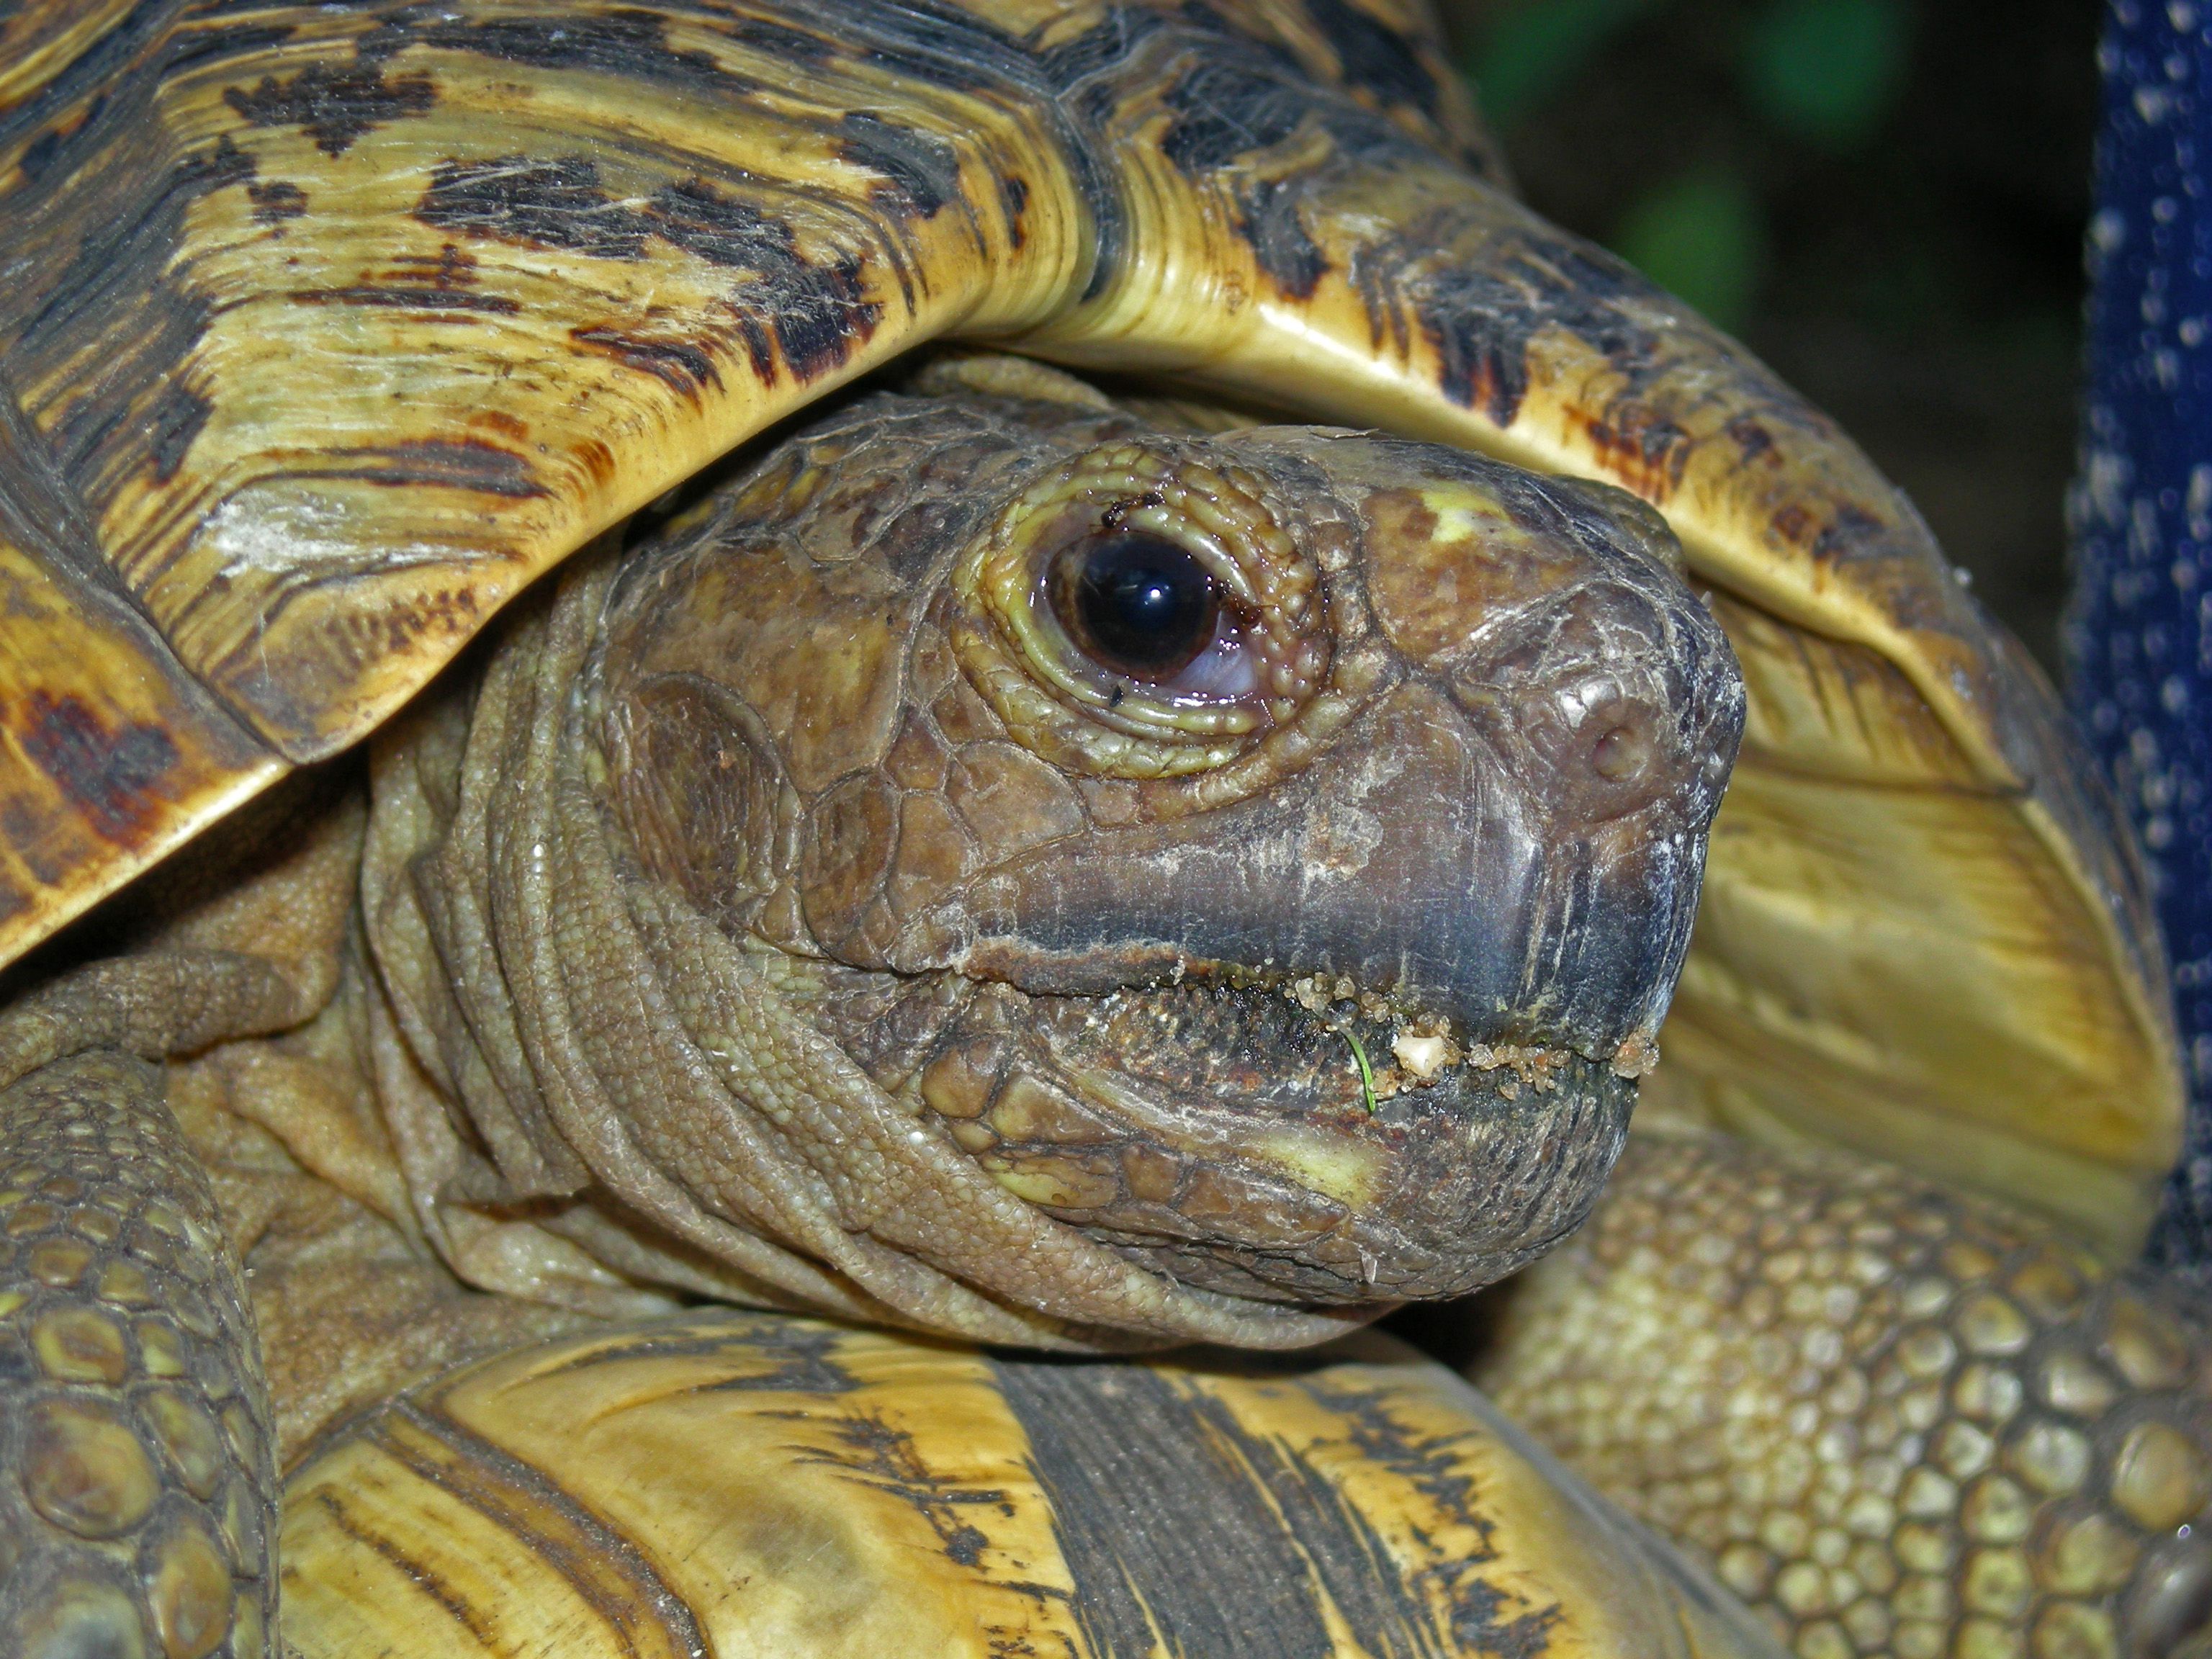 how to tell the age of a russian tortoise